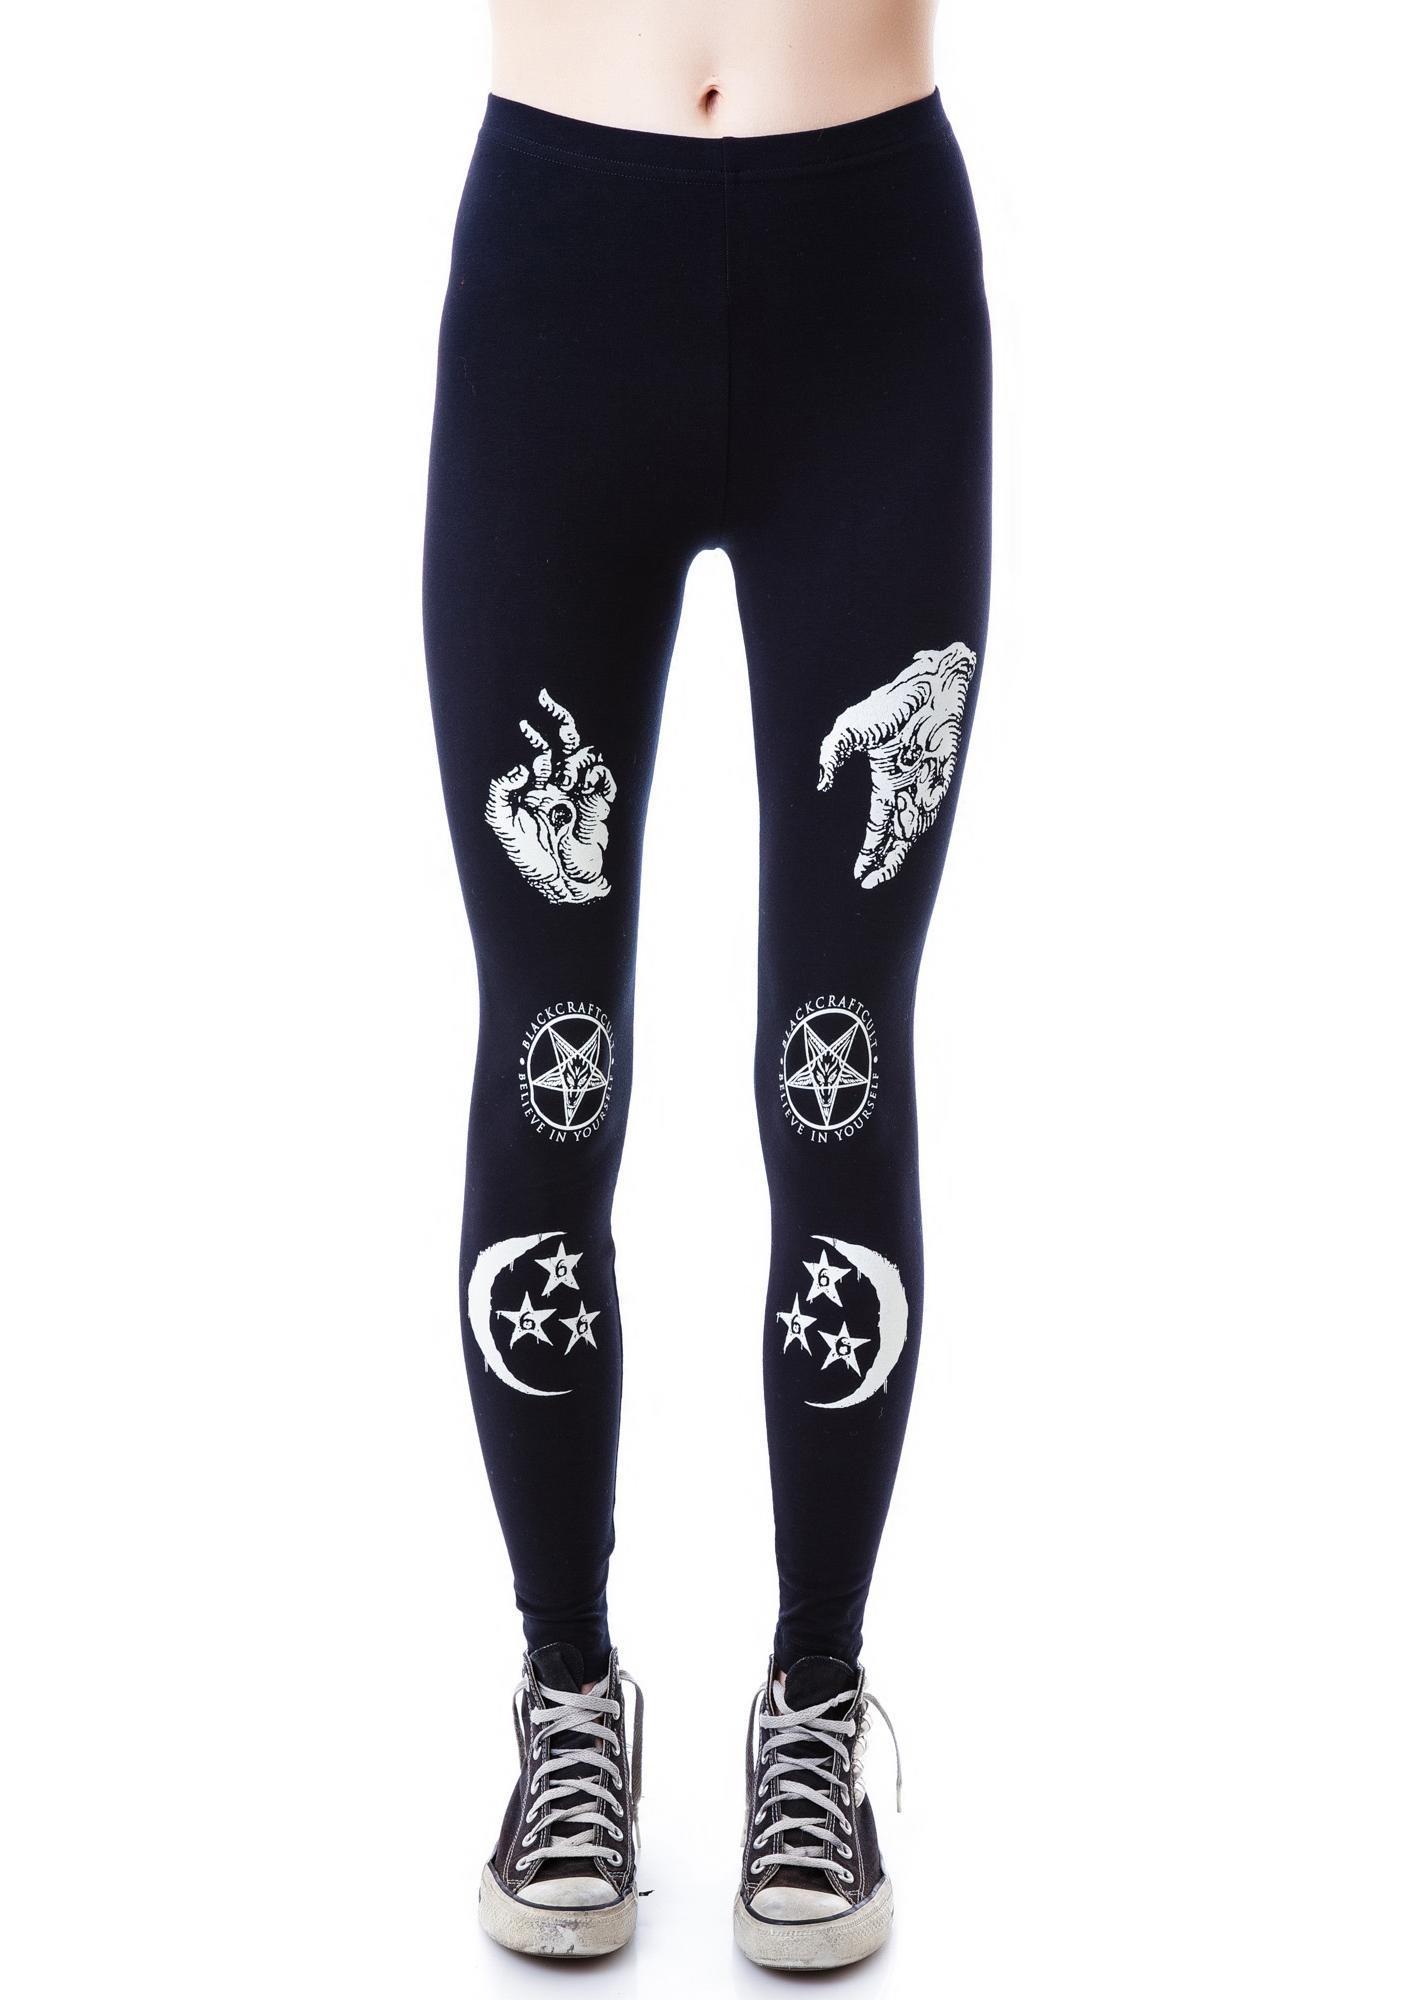 Severed Hands Leggings